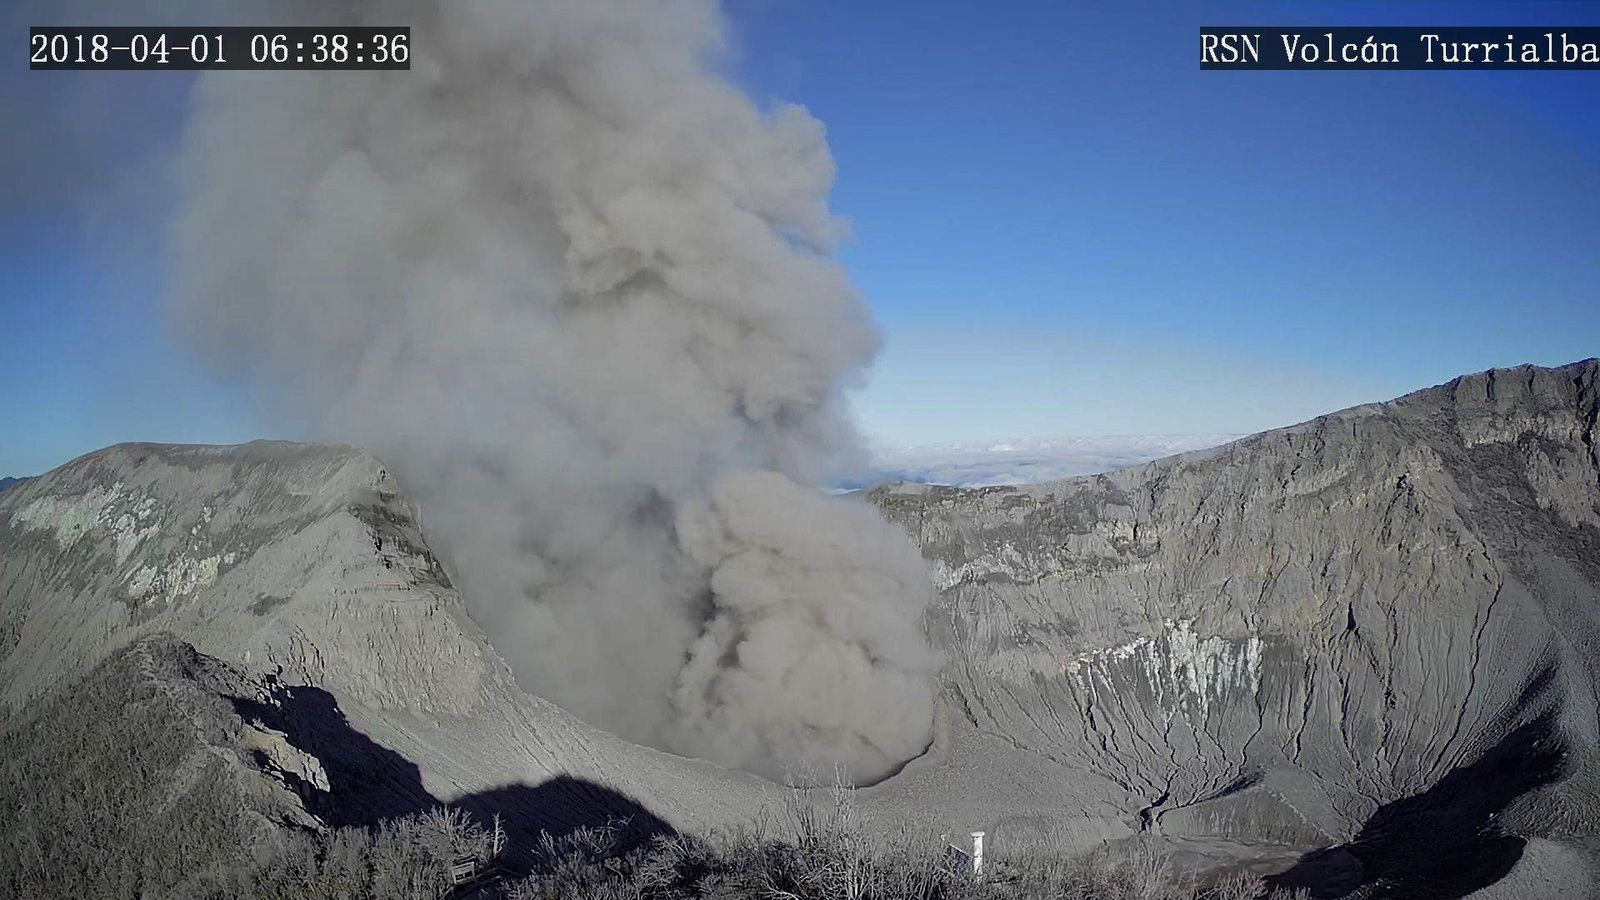 Turrialba - ash emission from 01.04.2018 / 6h38 - RSN webcam